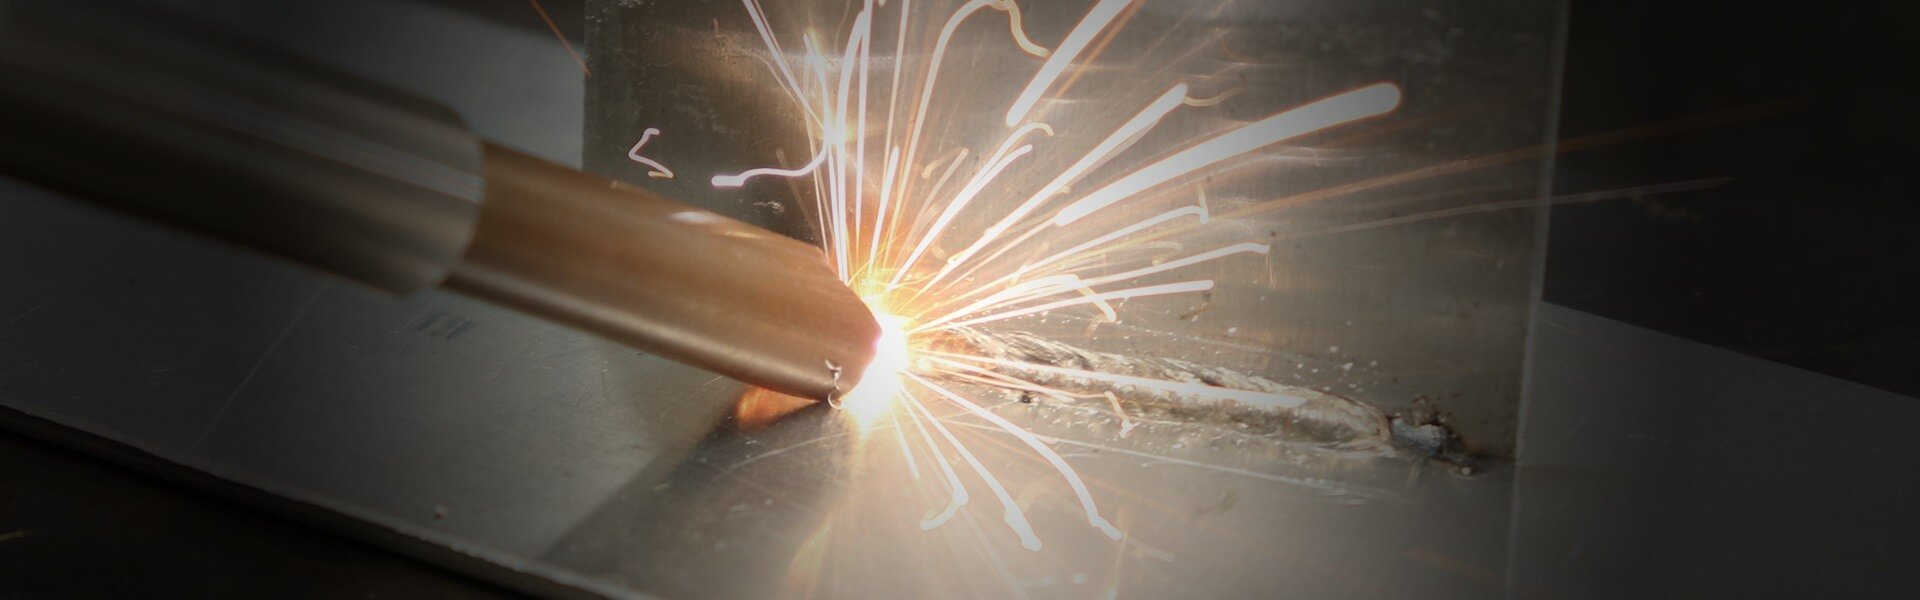 How to judge the welding effect of laser welding machine?